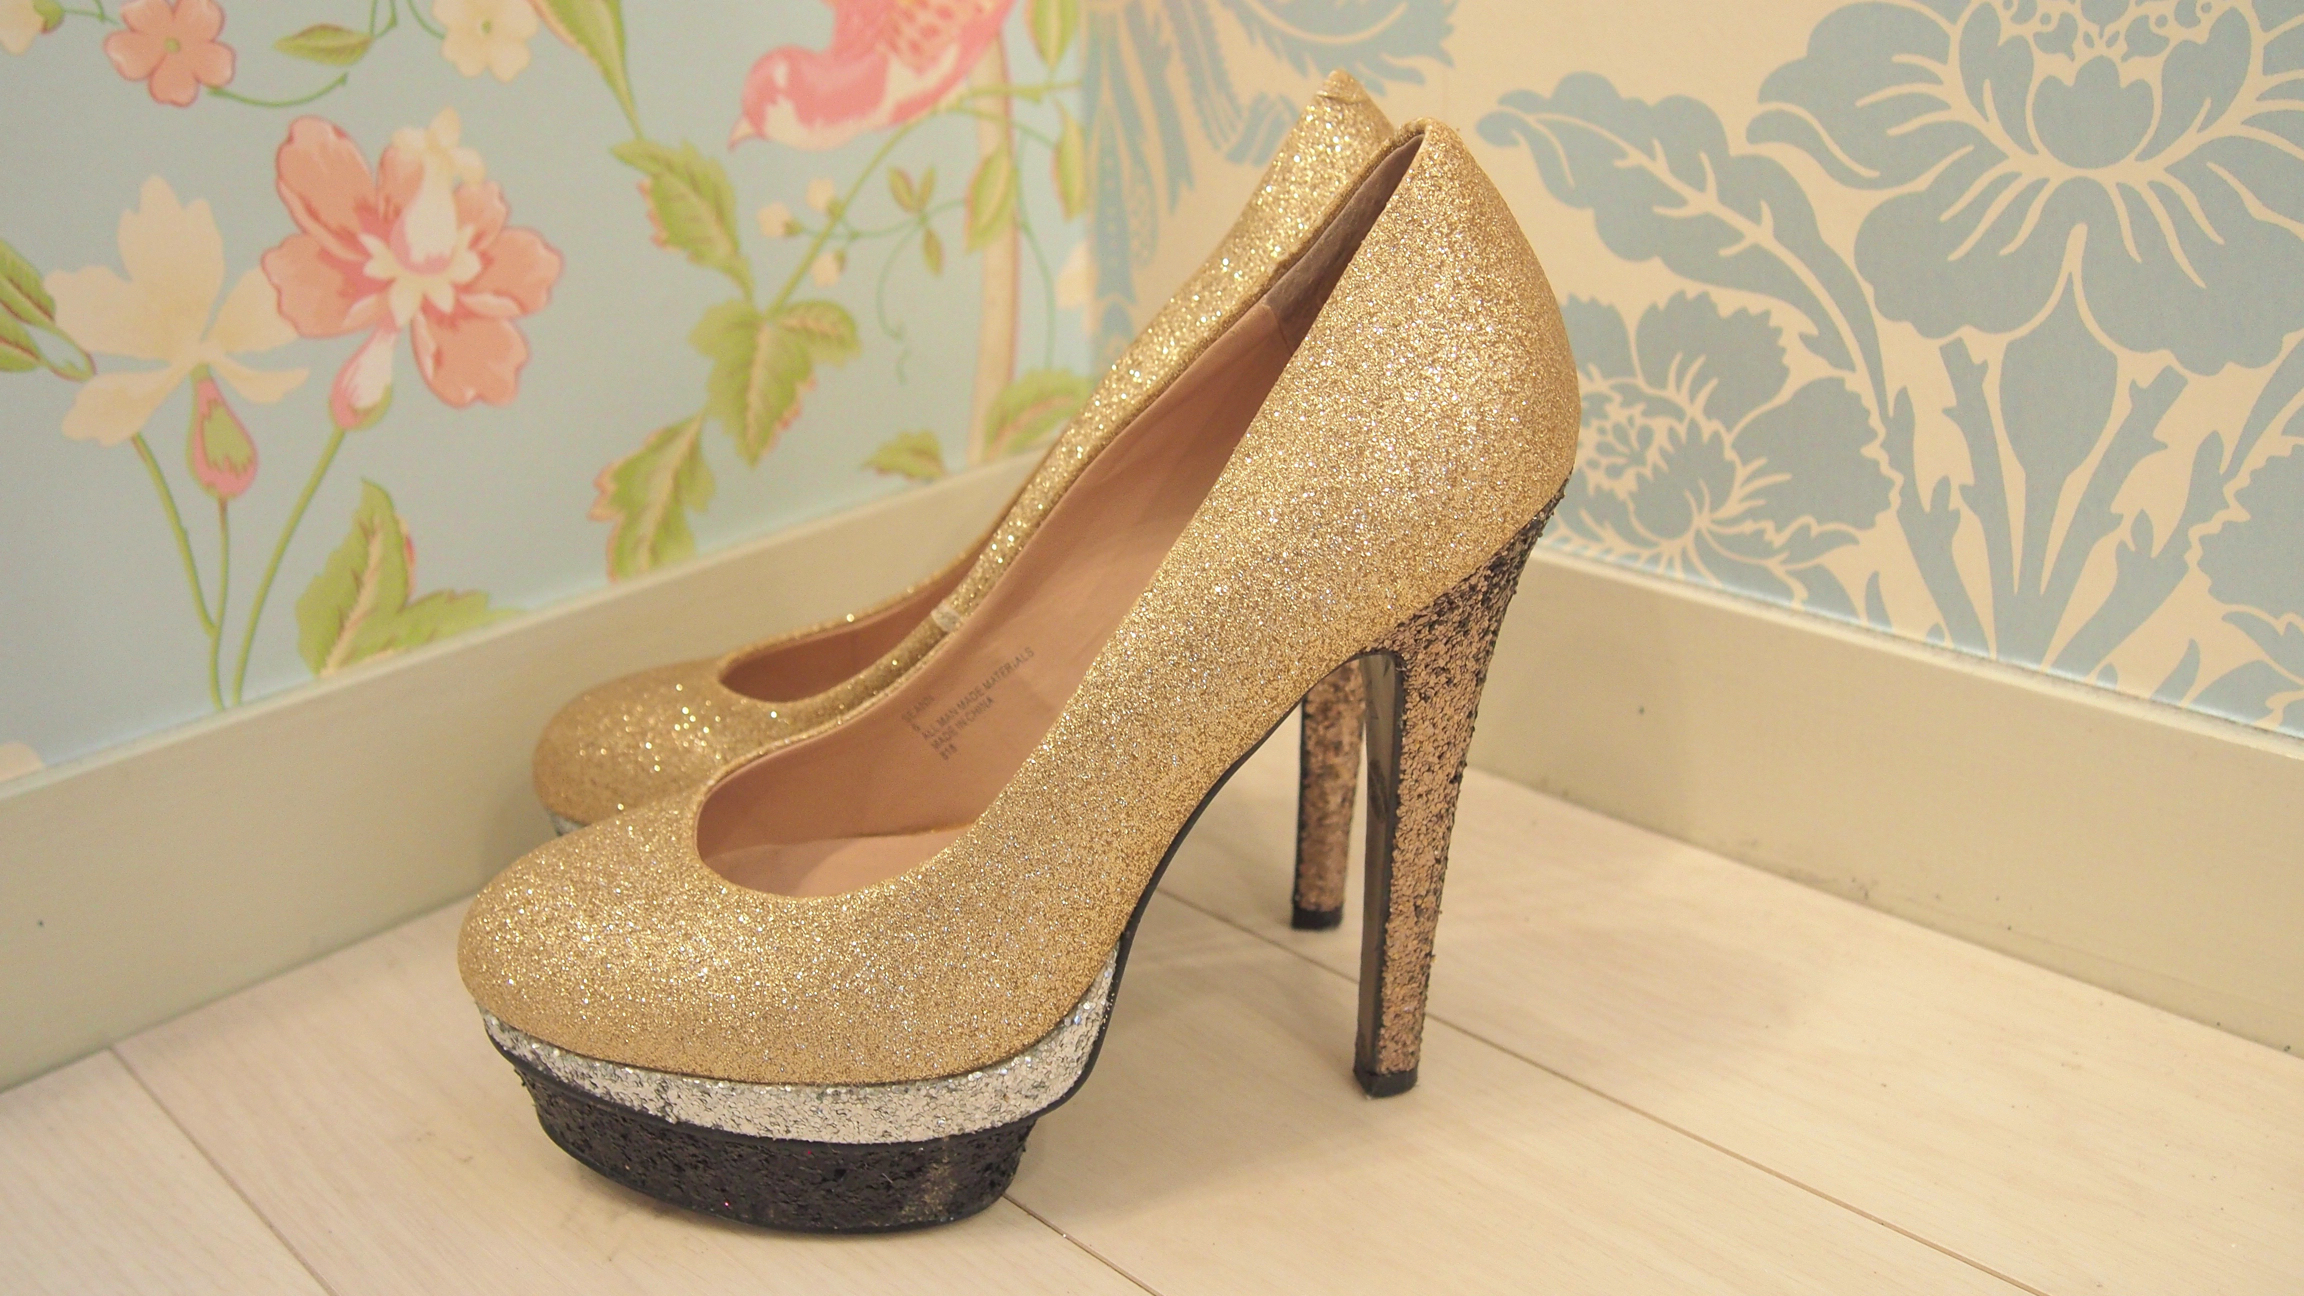 nr_shoes_032